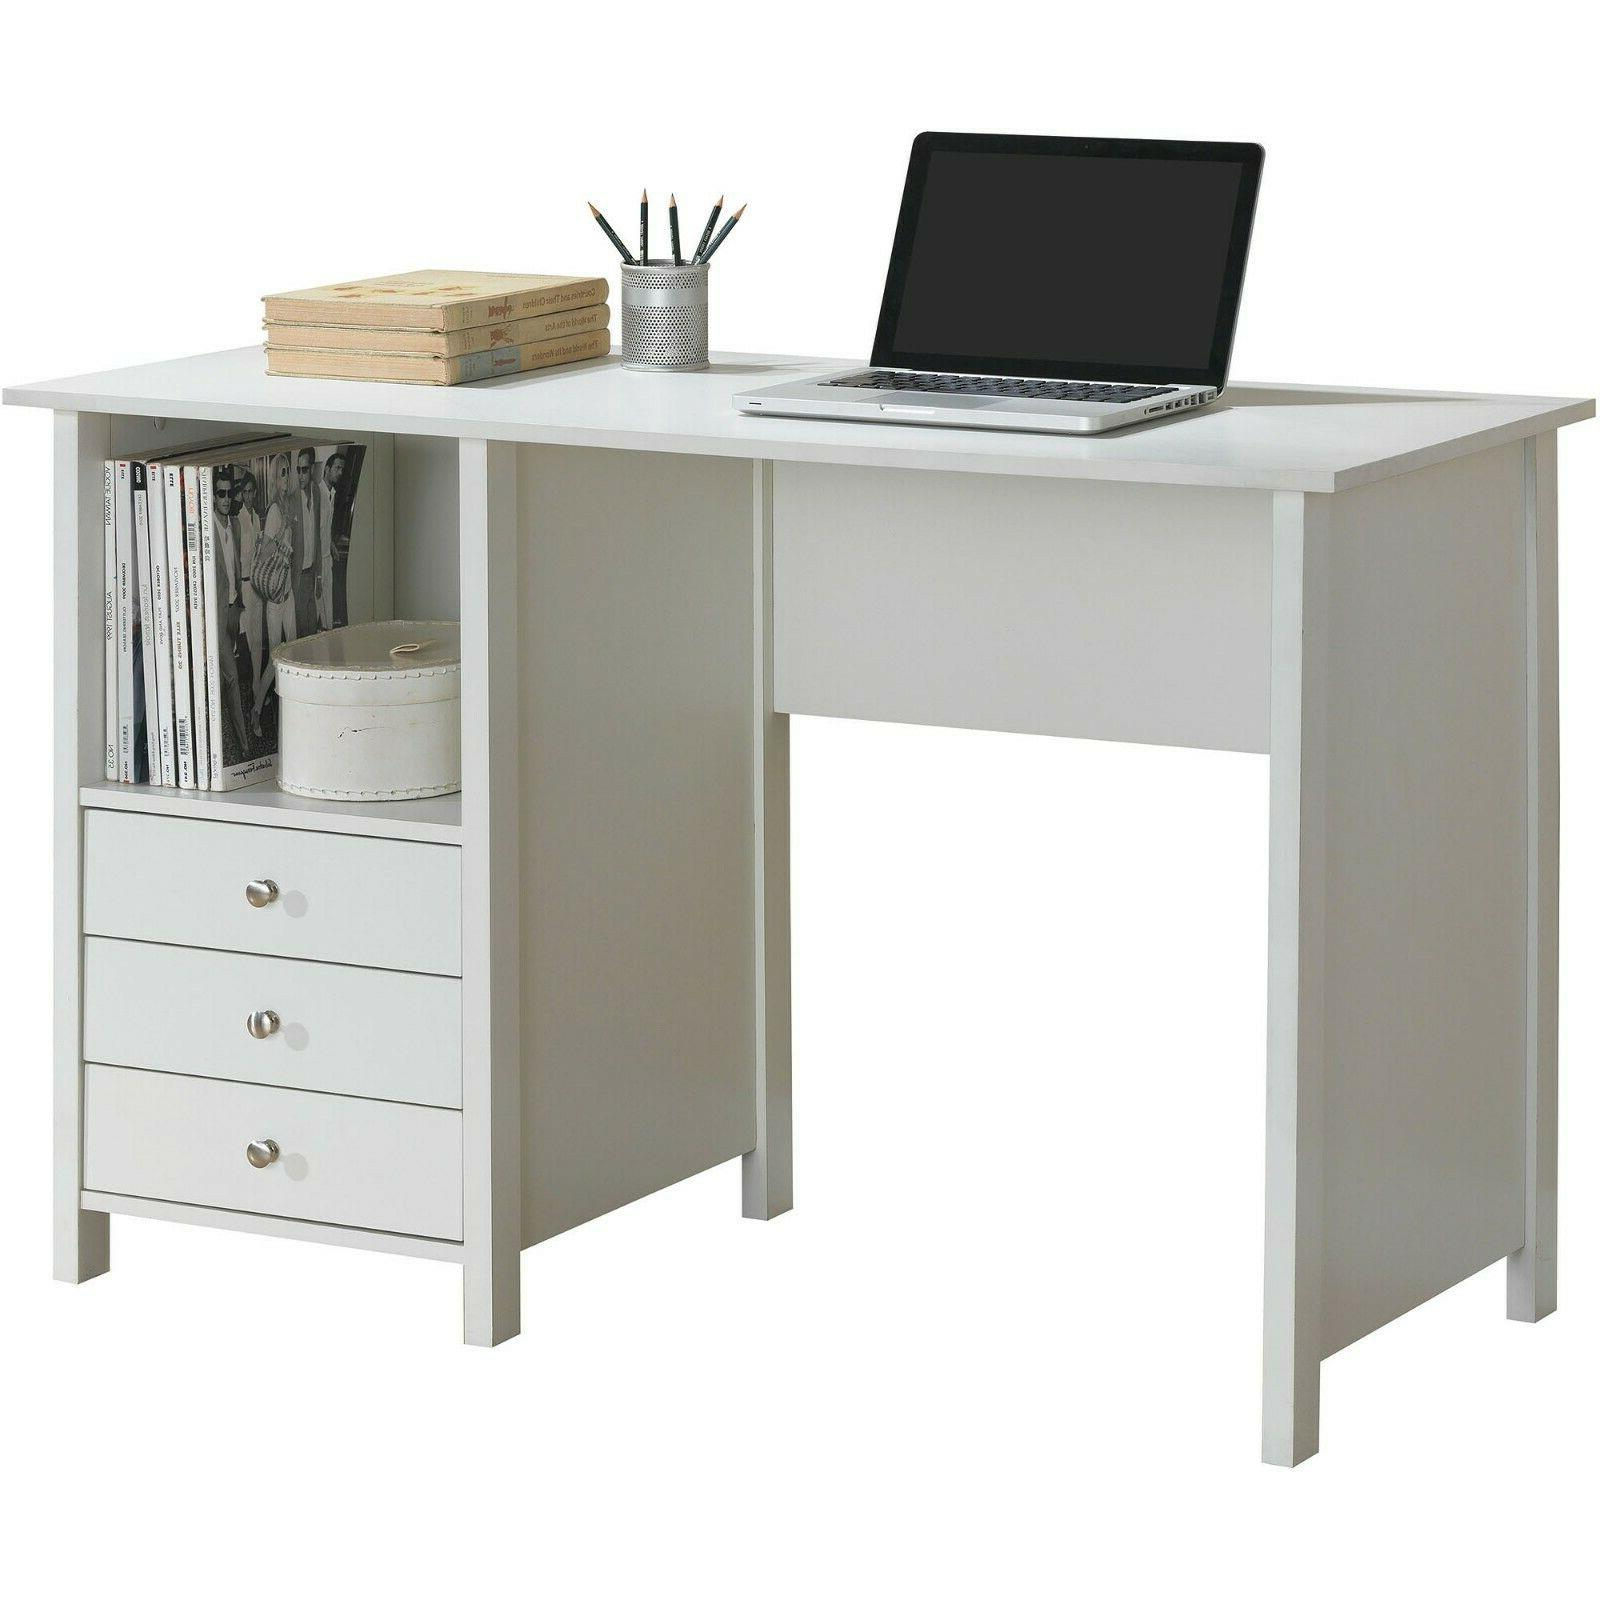 Computer Desk With 3 Storage Drawers Bedroom Home Office Fur